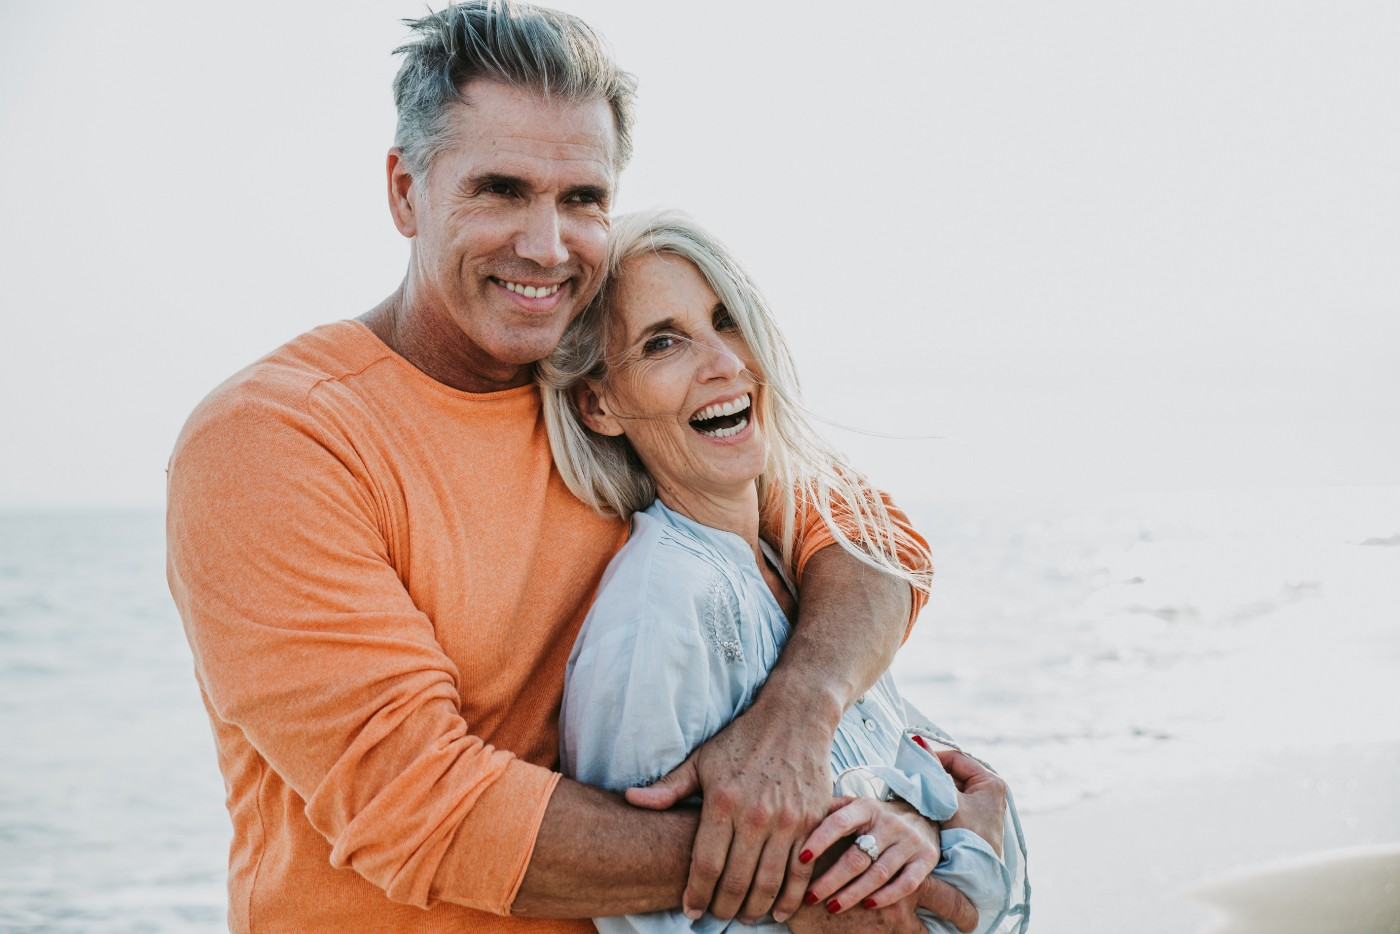 happy-senior-couple-spending-time-beach-concepts-about-love-seniority-people—Un Swede